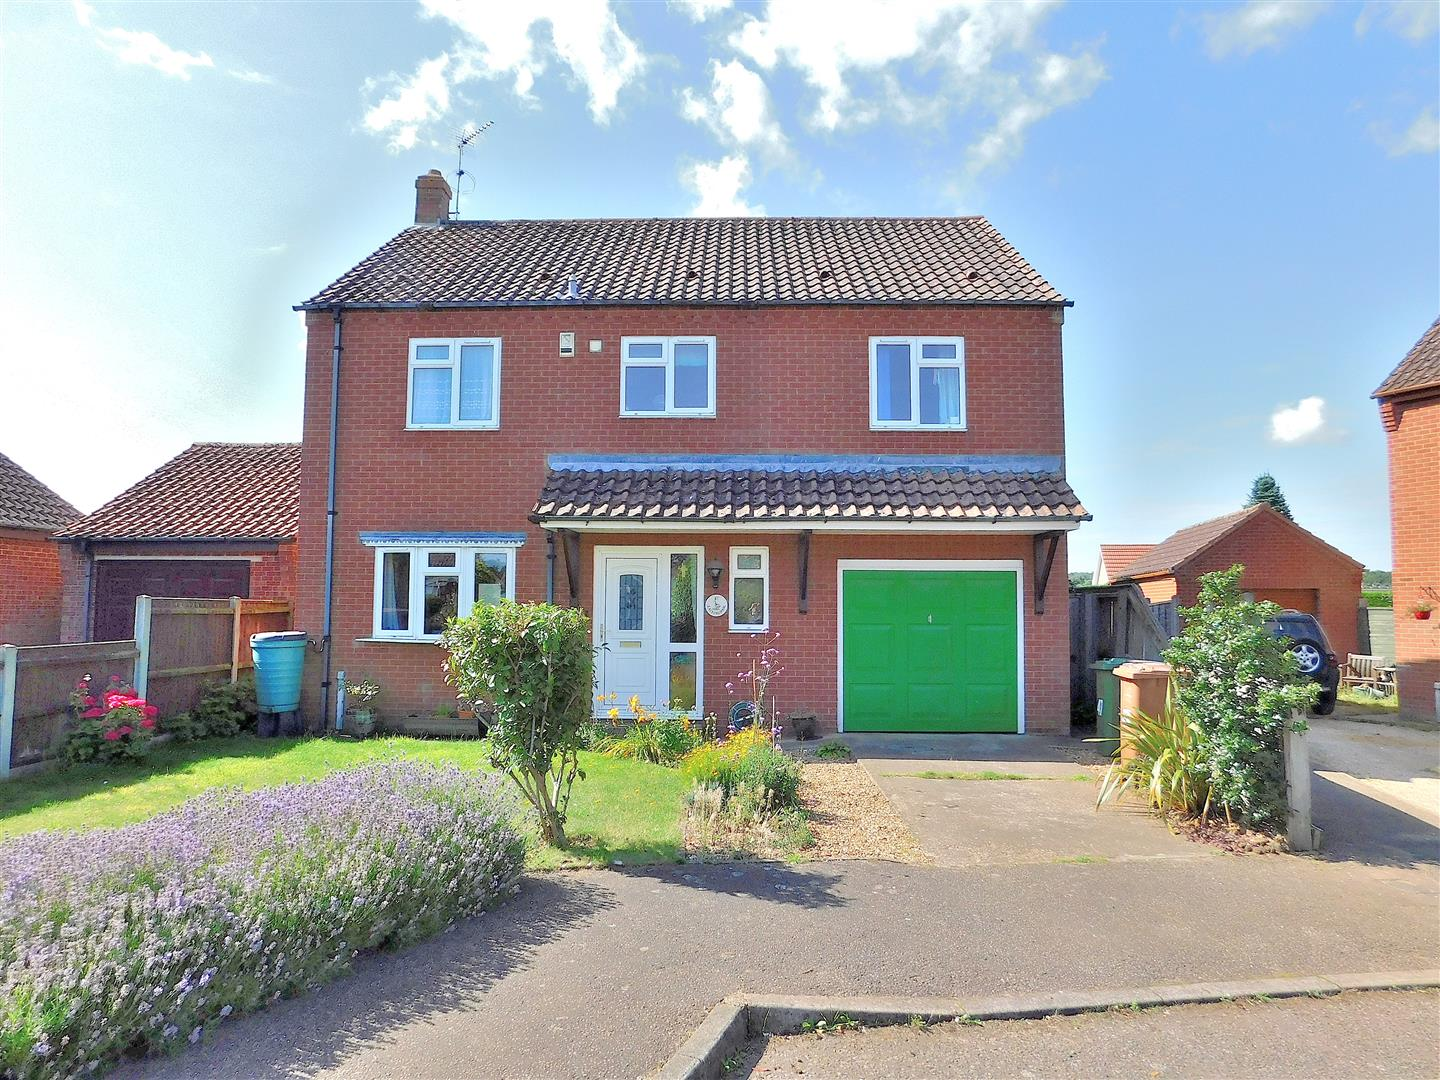 4 bed detached house for sale in King's Lynn, PE31 6JT, PE31